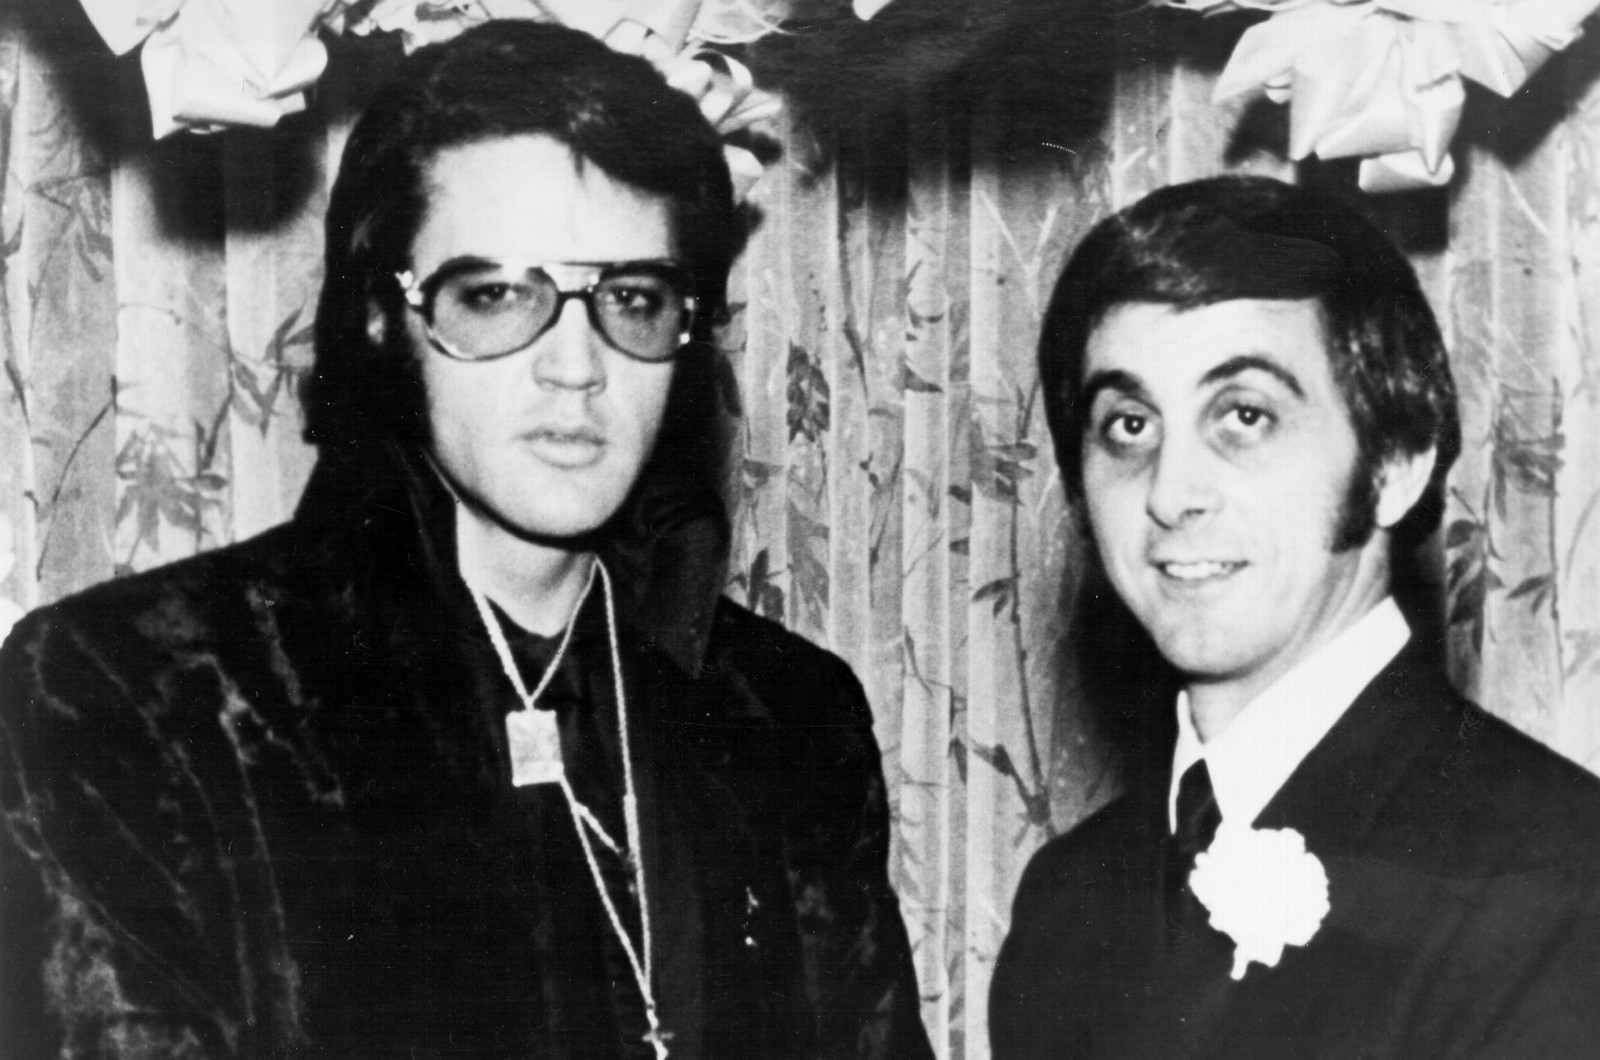 Elvis Presley with radio DJ and high school classmate George Klein in December of 1970 in Memphis, Tennessee.